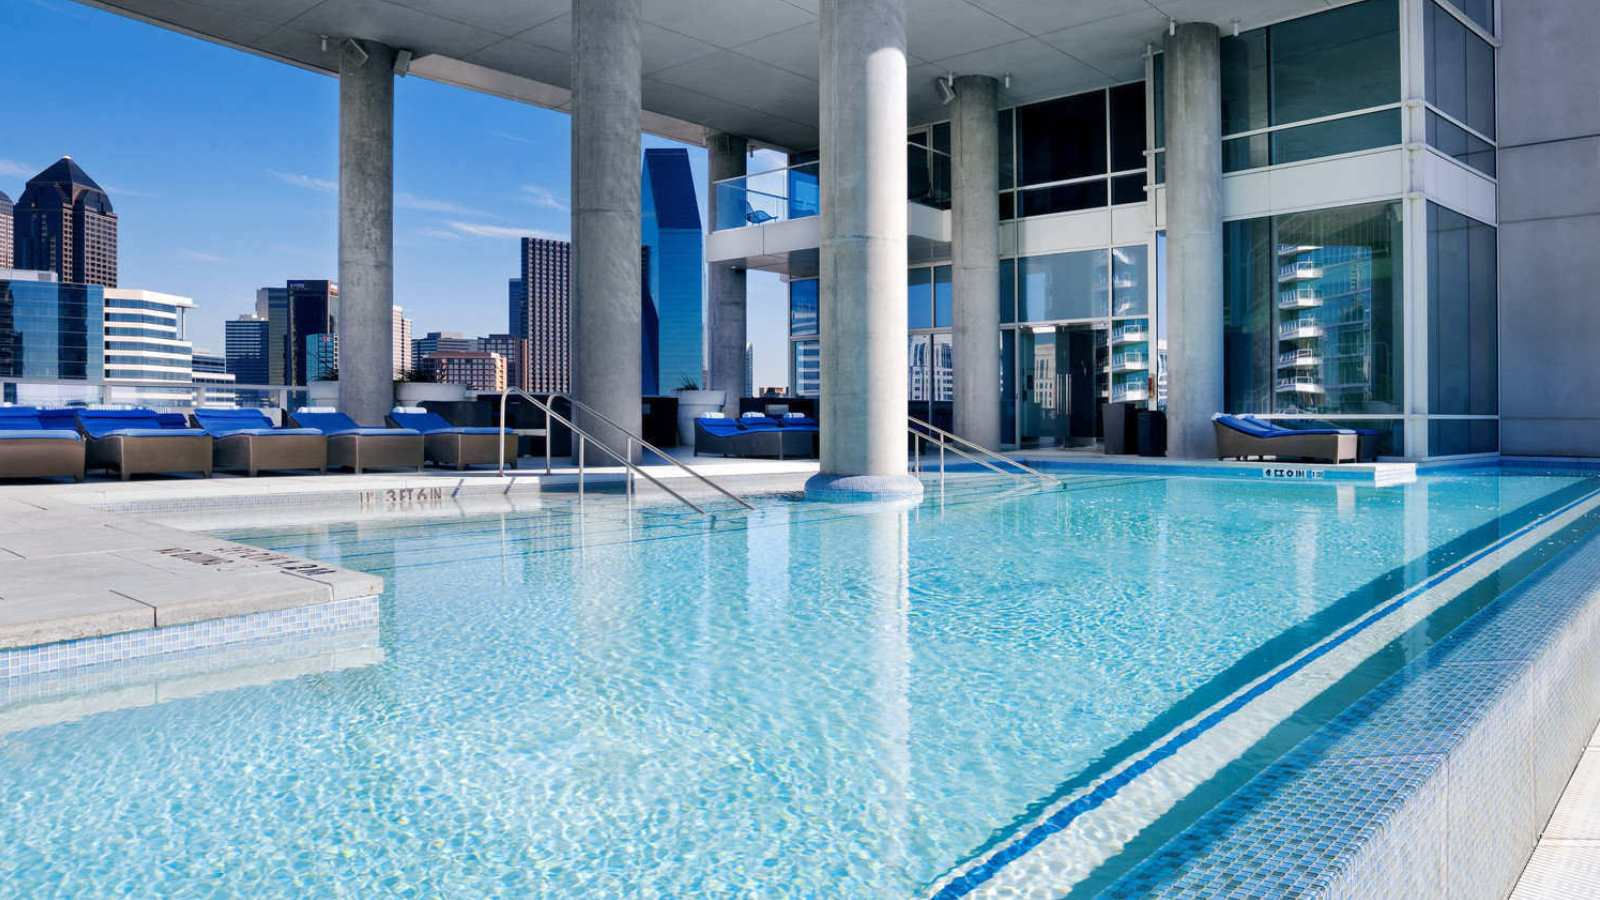 Dallas 10 Best Pools Hotel Retreats That Make The Texas Summer Bearable Papercity Magazine